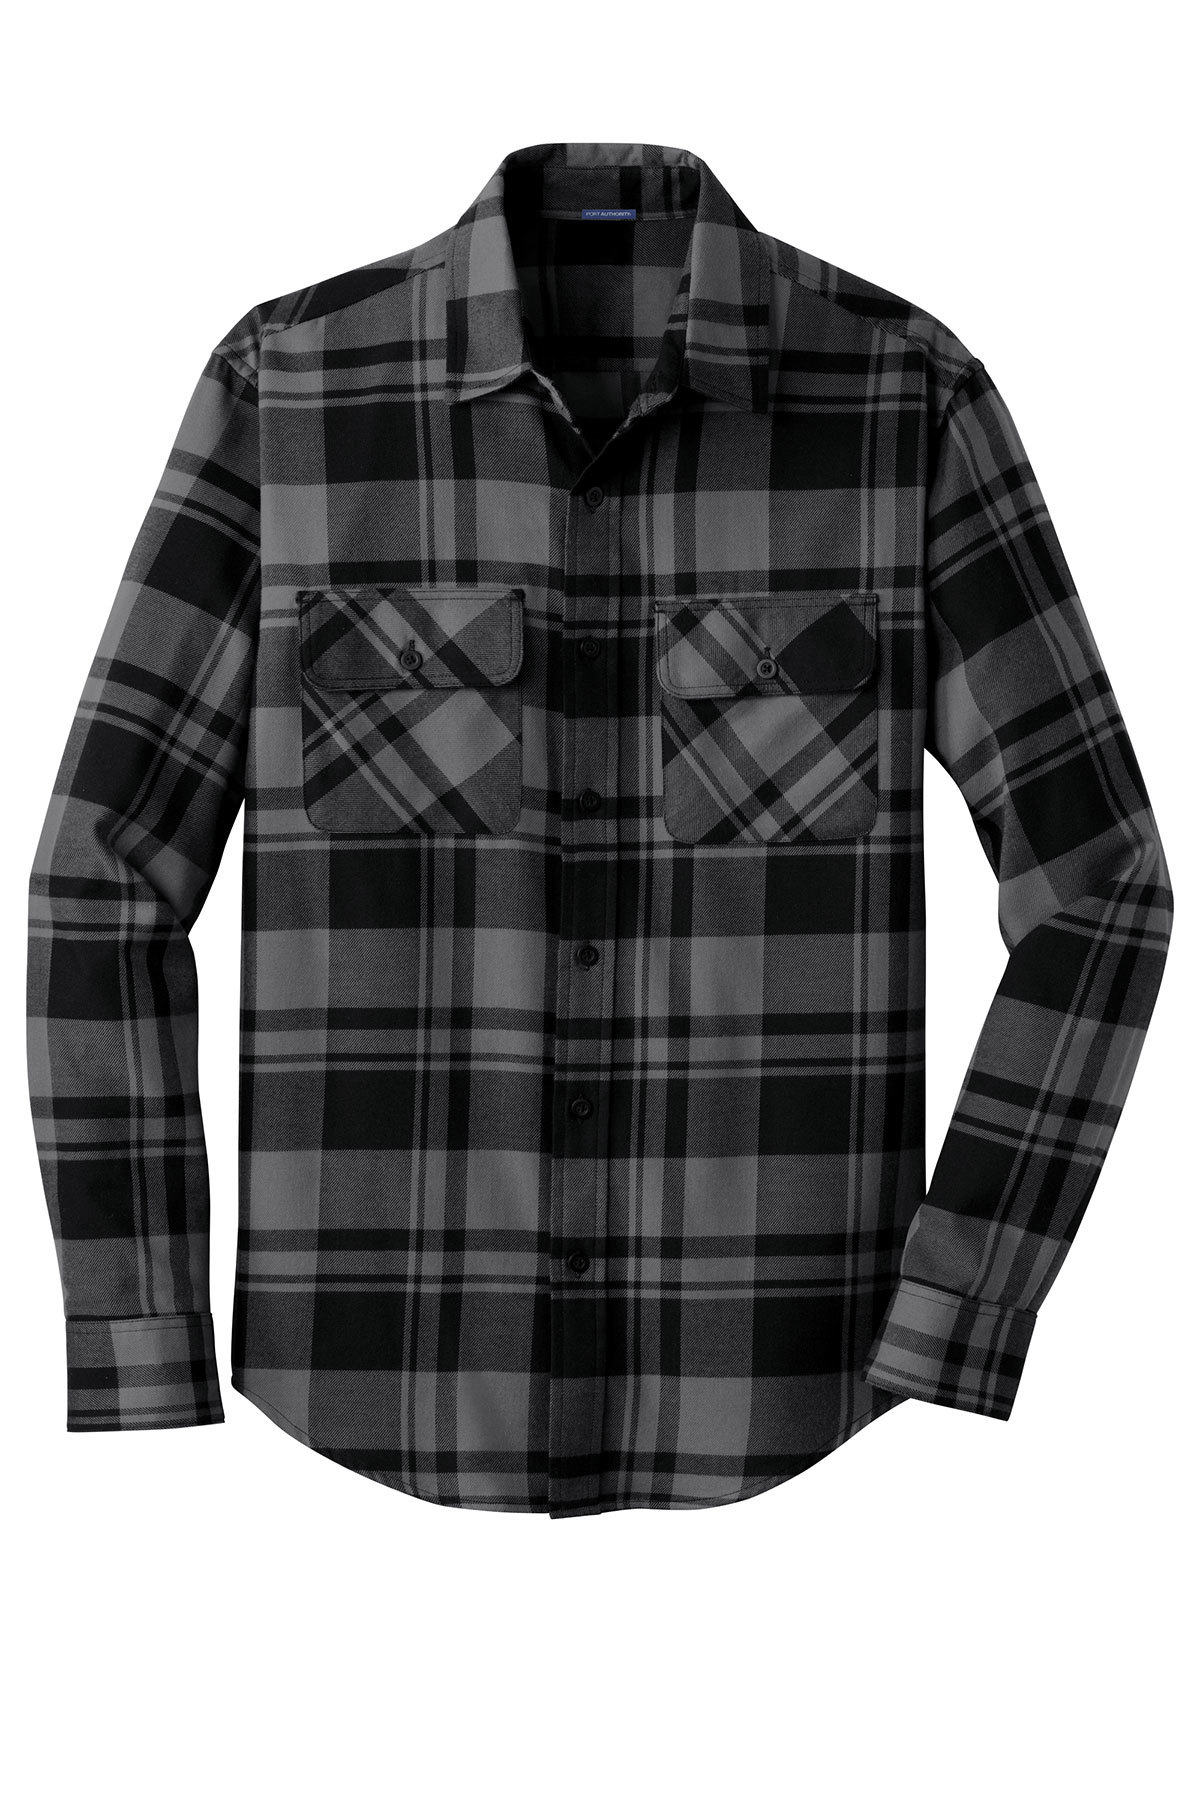 Flannel shirt outline black and white clipart jpg black and white stock Port Authority® Plaid Flannel Shirt | Cotton/Poly Blend | Woven ... jpg black and white stock